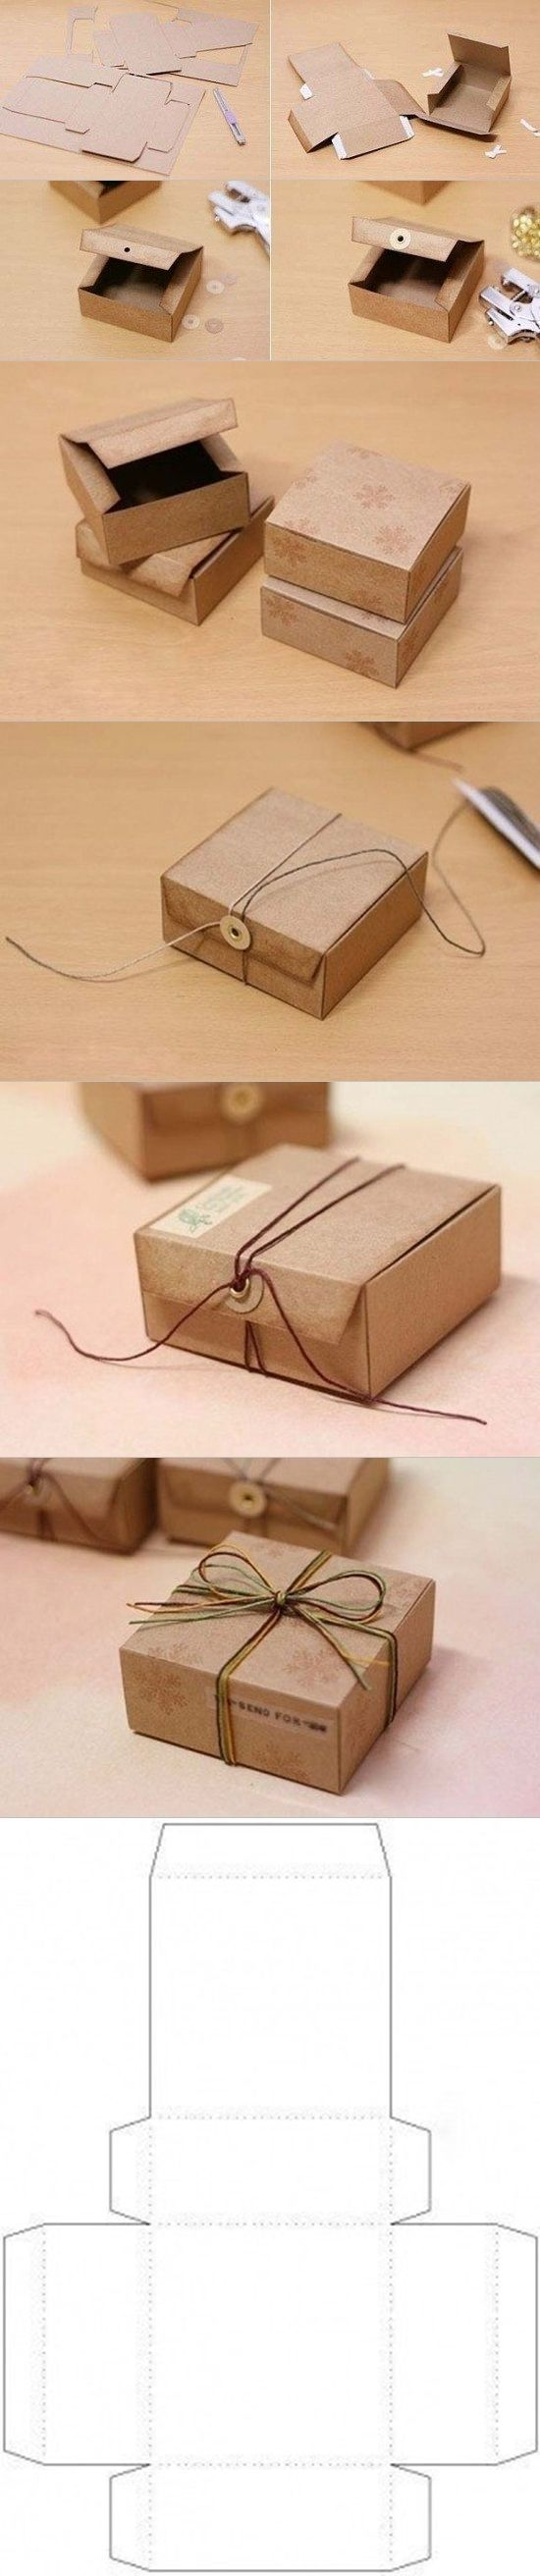 DIY Gift Box from Cardboard